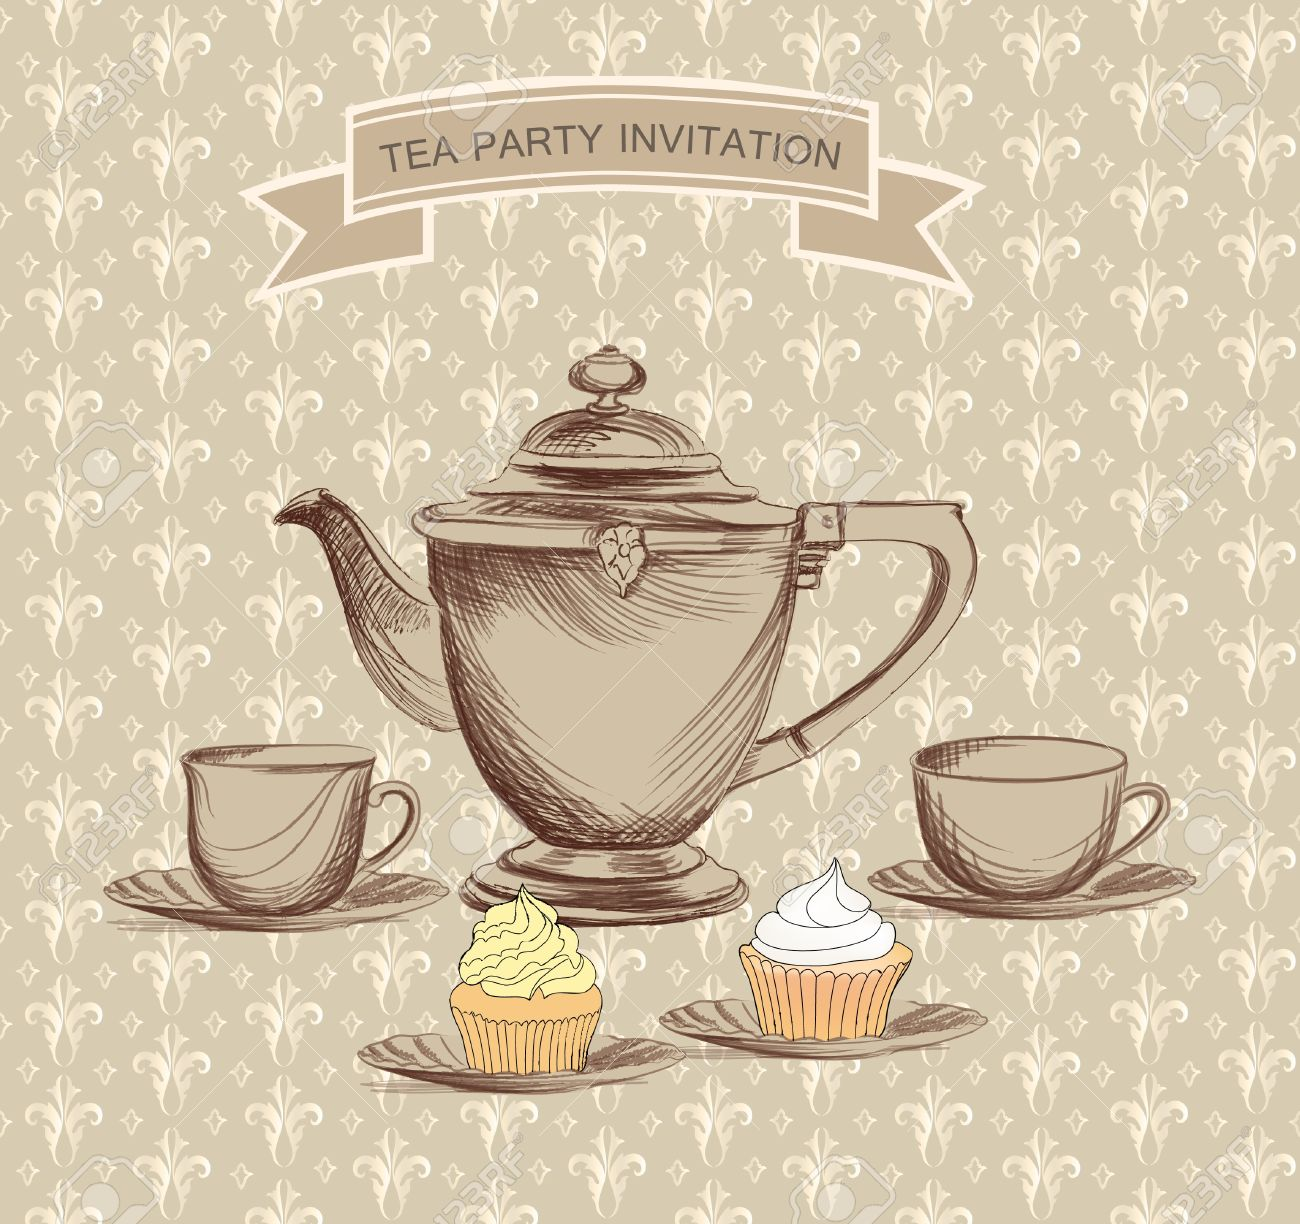 Elegant tea party invitation template with teacups cartoon vector - Tea Party Tea Time Retro Label Tea Cup And Pot Label In Vintage Style